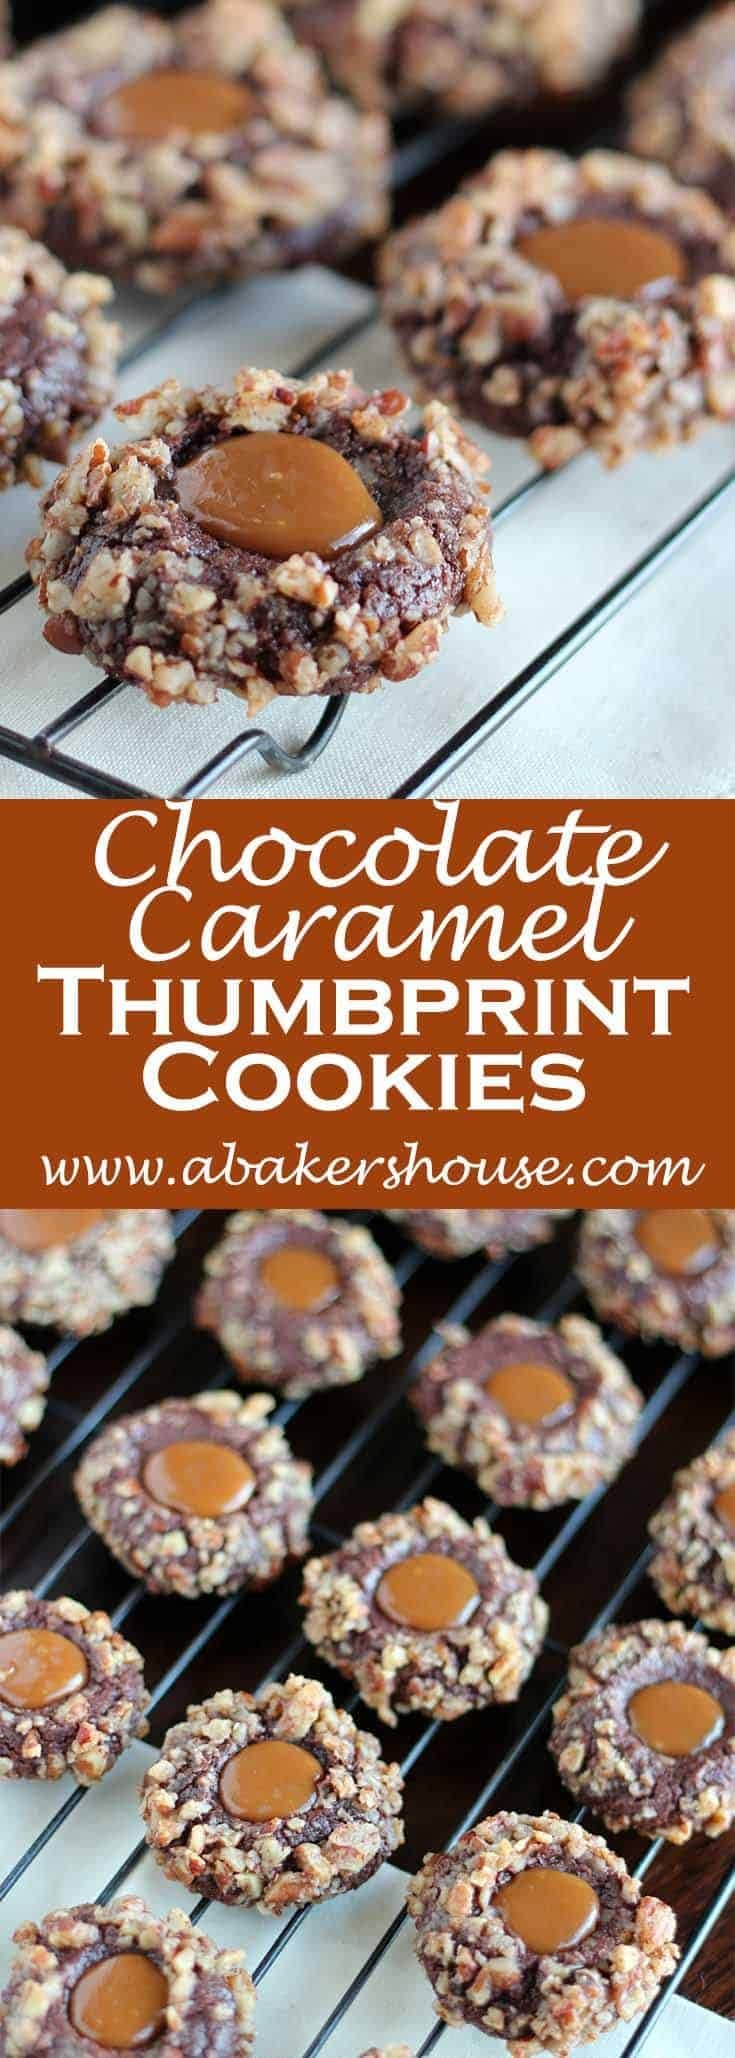 Chocolate Caramel Thumbprint Cookies: The dough is made and refrigerated, then balls of dough are dipped in egg whites and coated with pecans. The caramel is the treat added after baking. Perfect for Holiday cookie exchanges! #abakershouse #cookieexchange #cookierecipe #caramel #chocolate